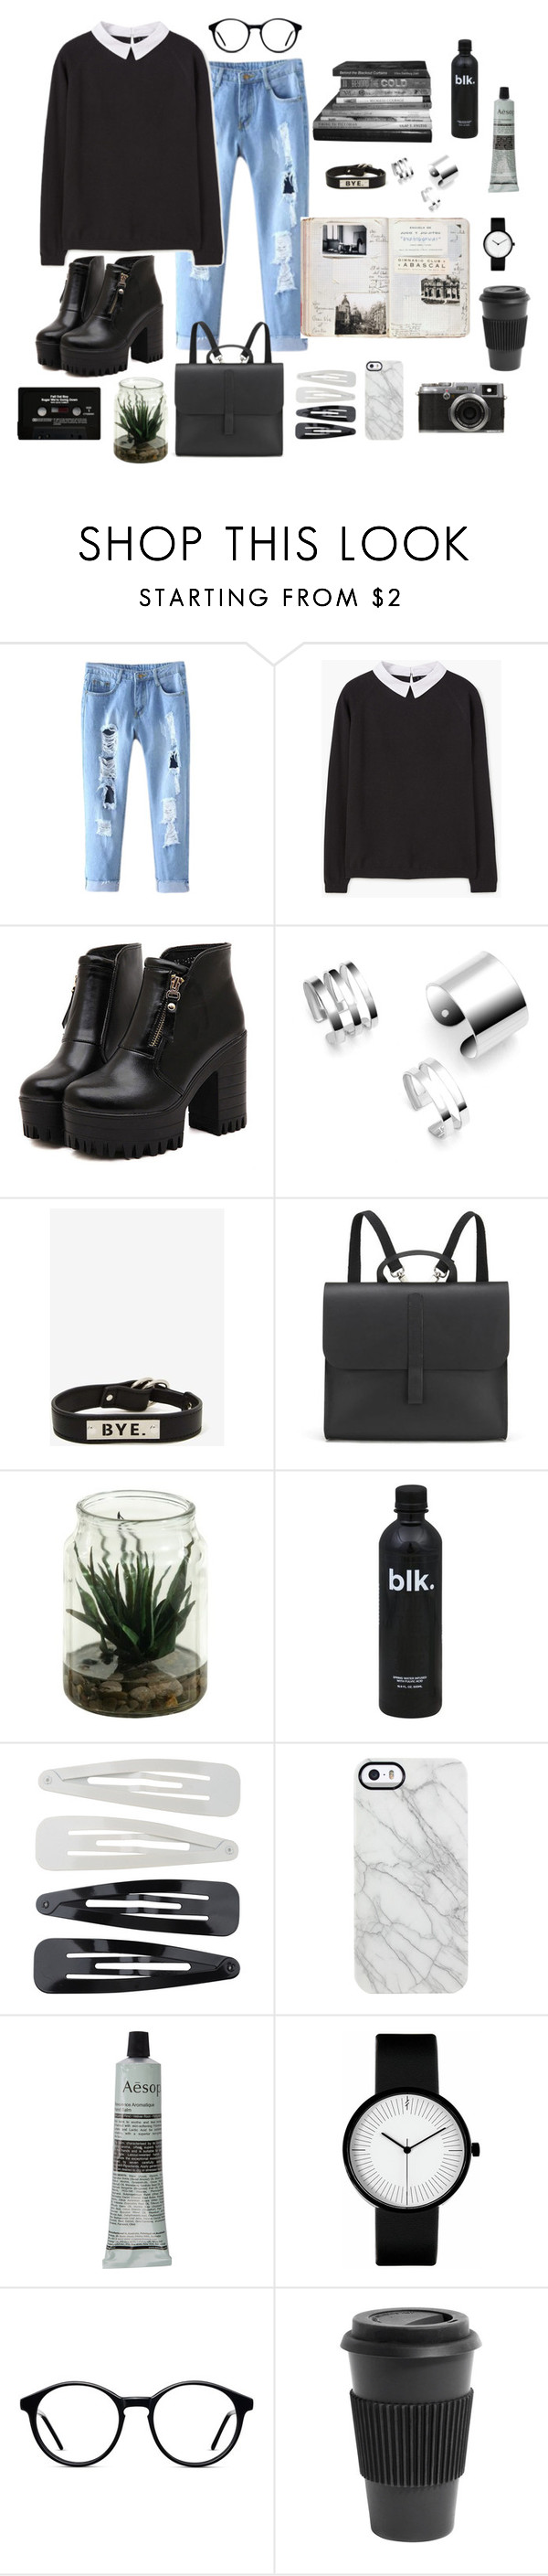 """""""RANDOM THINGS"""" by cooltured ❤ liked on Polyvore featuring MANGO, Dr. Martens, UNIF, Danielle Foster, Forever 21, Uncommon, Aesop, Homage, Fuji and vintage"""